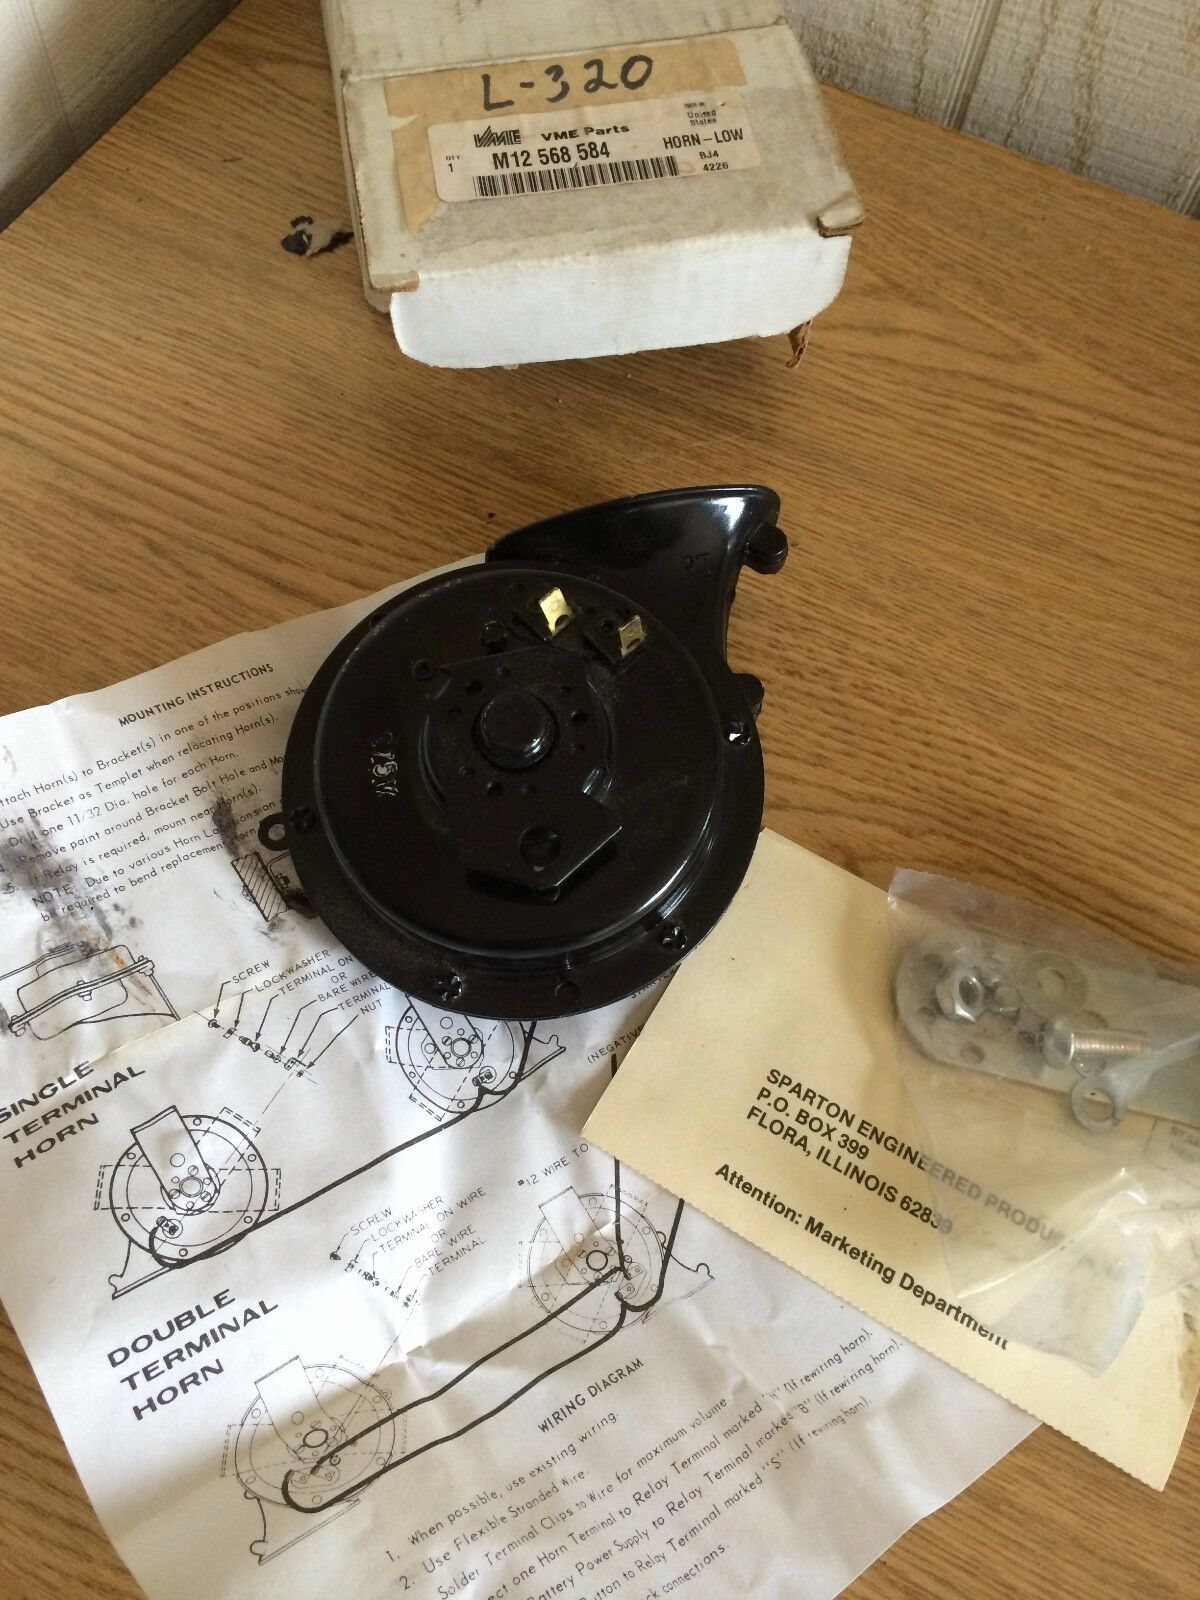 Vme Volvo Horn Kit With Bracket 12568584 Or M12 568 584 Sparton Lo Ih Wiring Diagram New Other Lowest Price